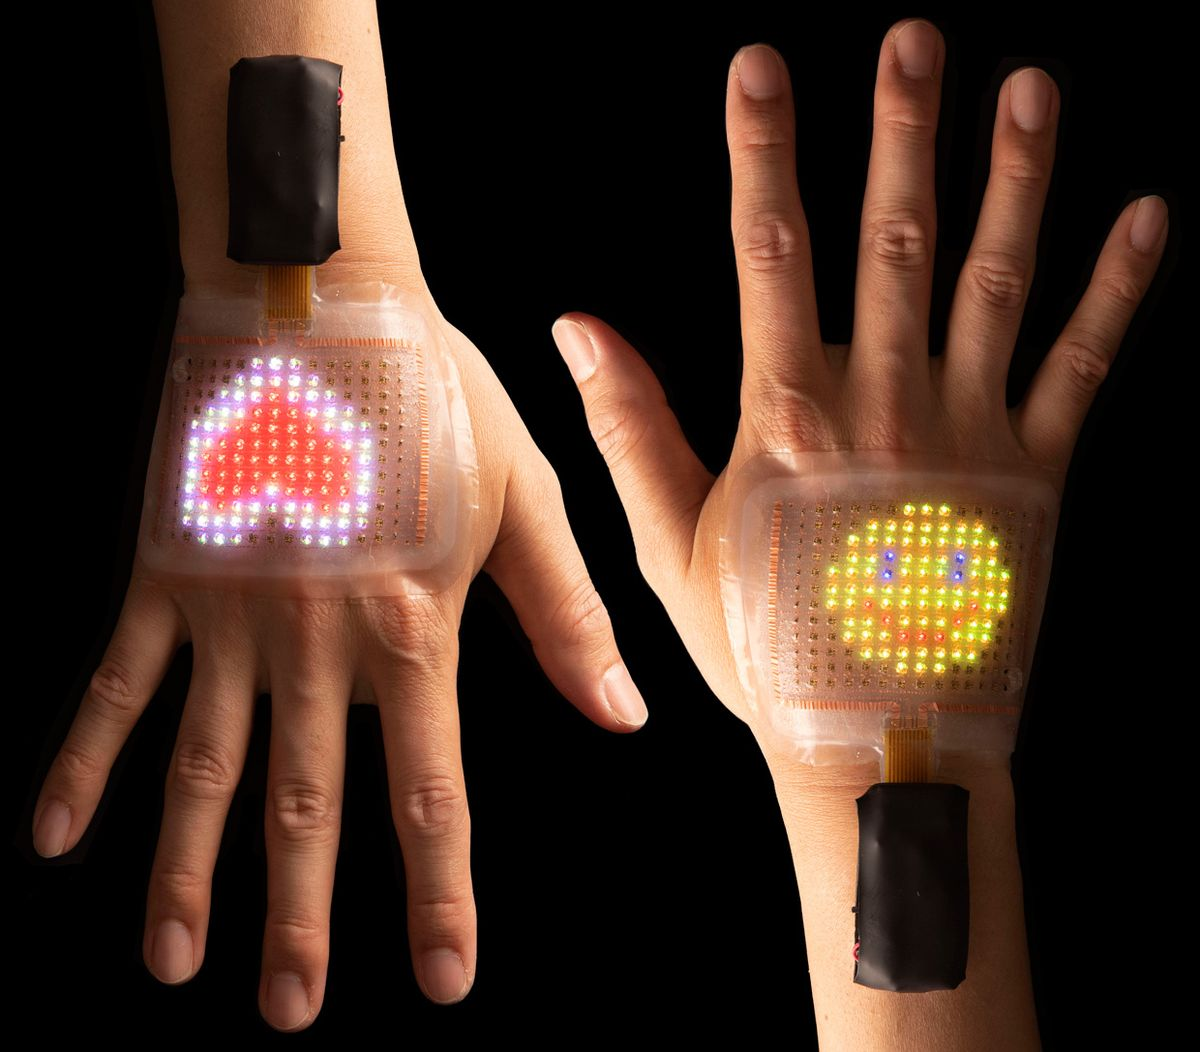 Image of two hands displaying the skin displays.